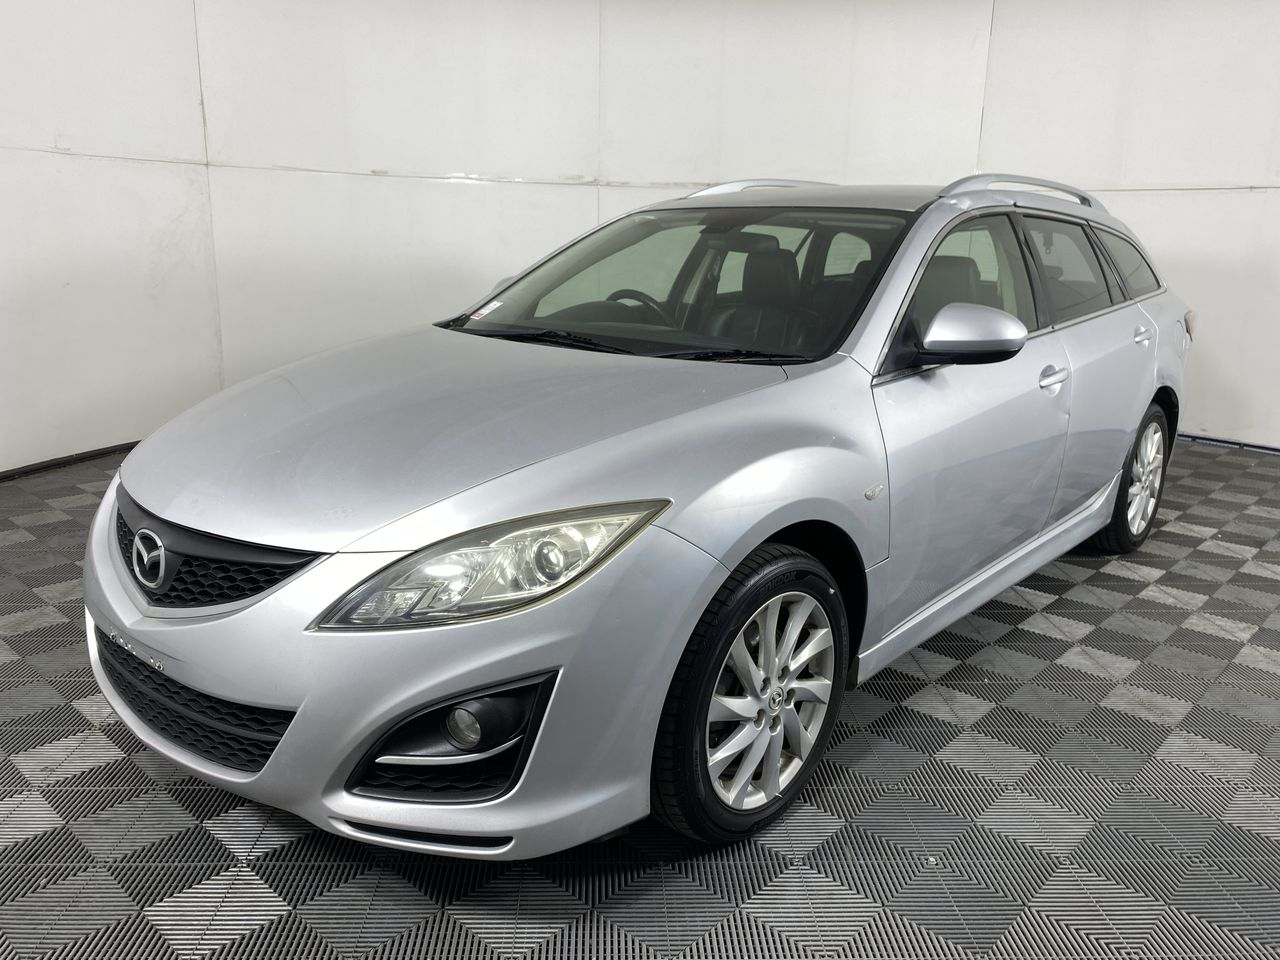 2010 Mazda 6 Classic GH Automatic Wagon (WOVR-Inspected)